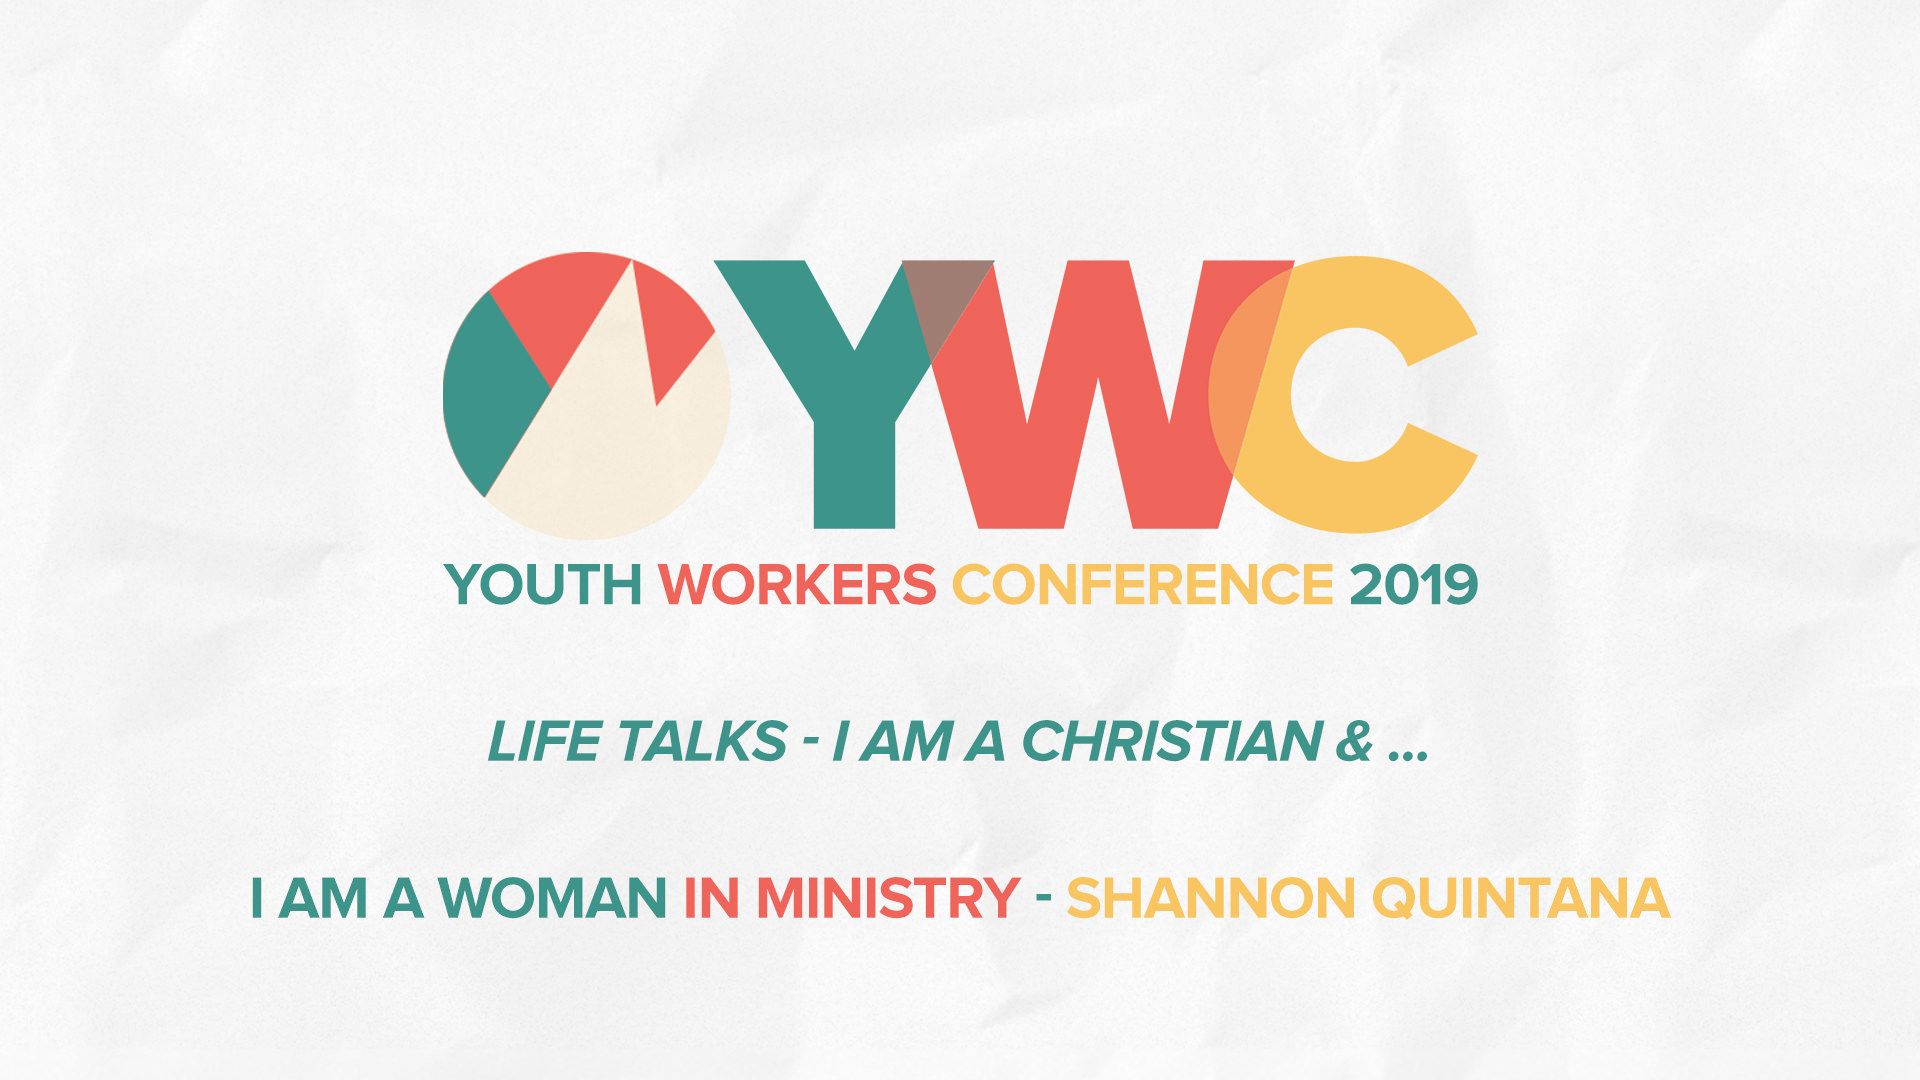 Shannon Quintana: Life Talk -  I am a Christian & I am a woman in ministry.